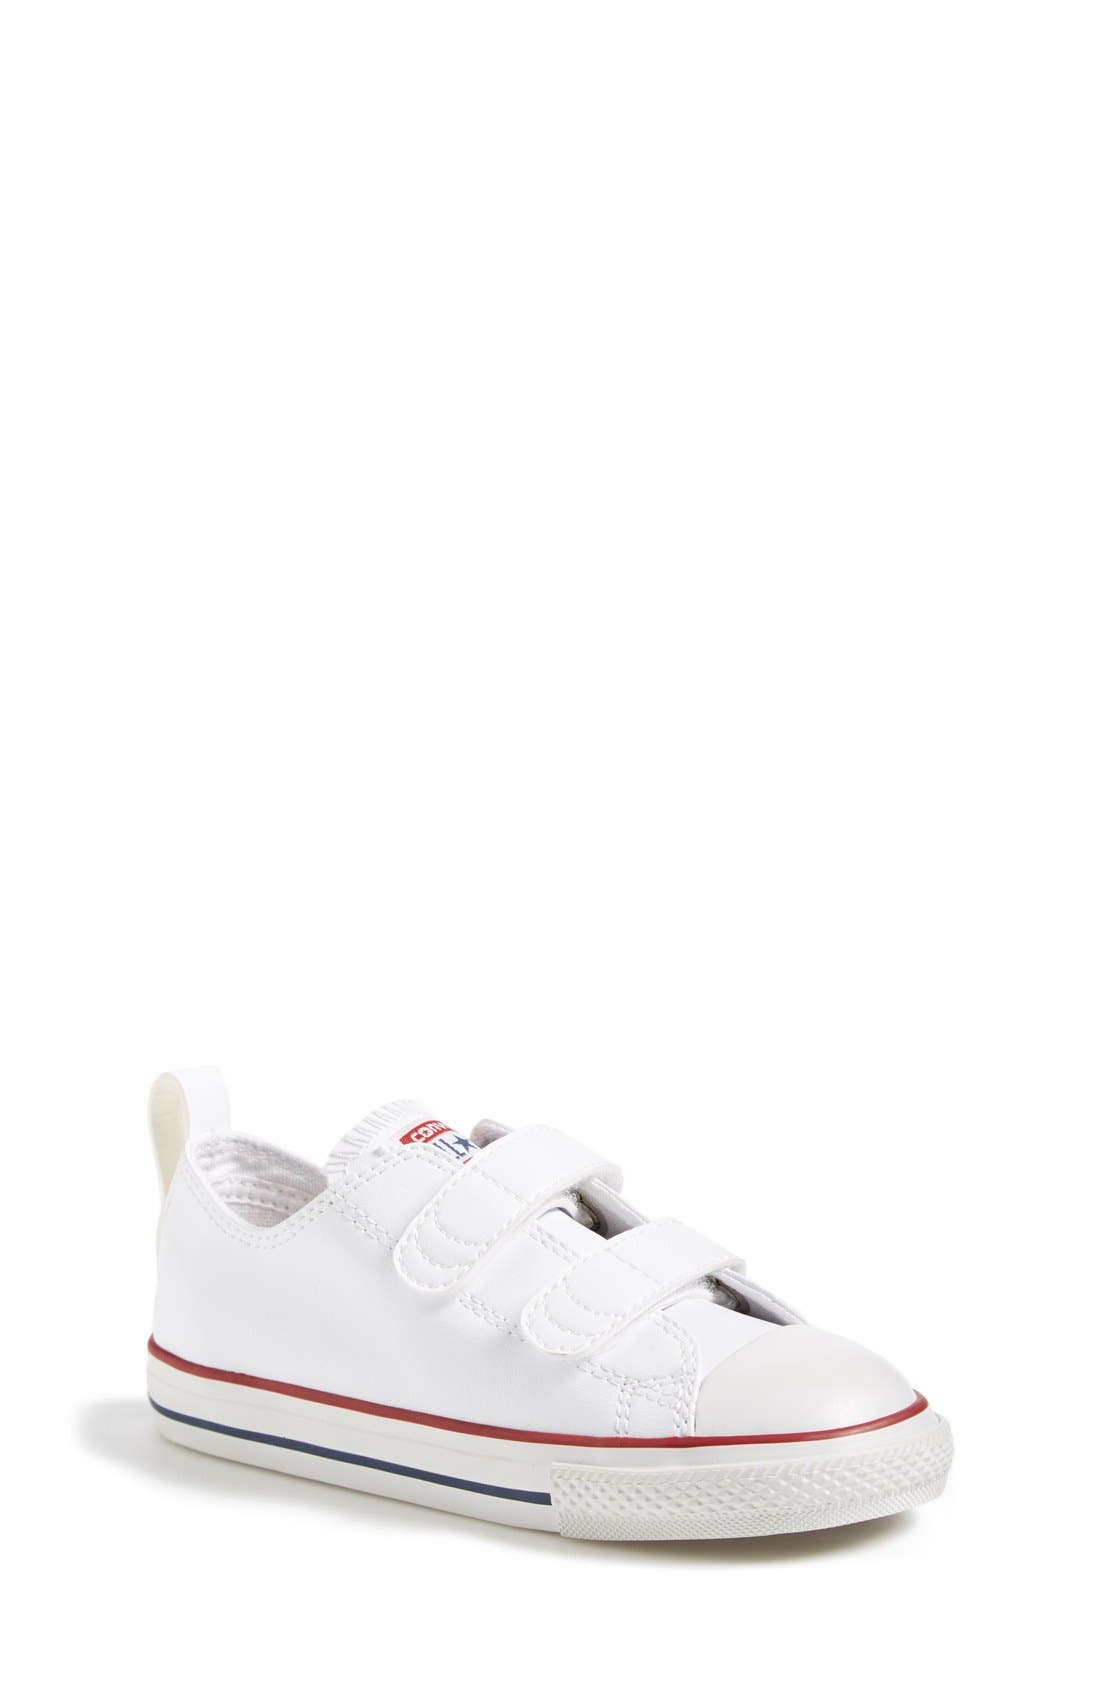 Chuck Taylor<sup>®</sup> All Star<sup>®</sup> 2V Faux Leather Sneaker,                             Main thumbnail 1, color,                             WHITE